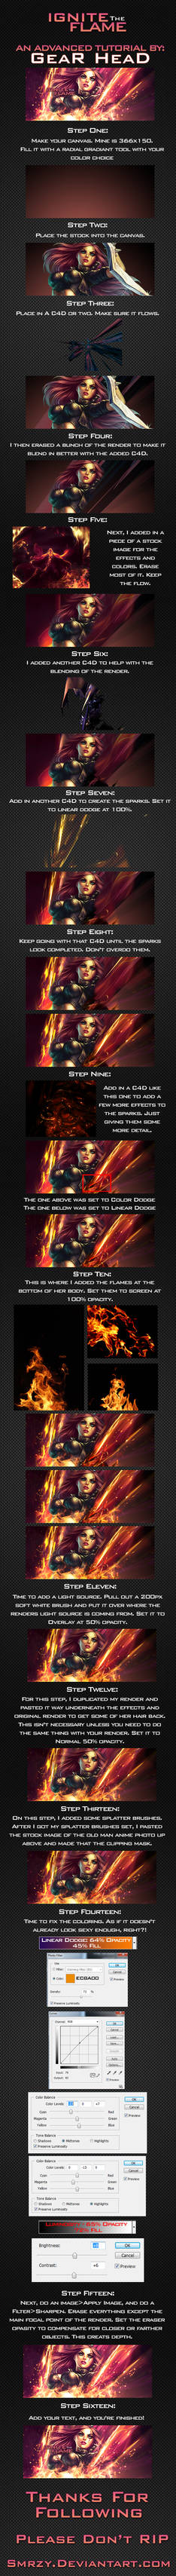 Ignite The Flame Tutorial